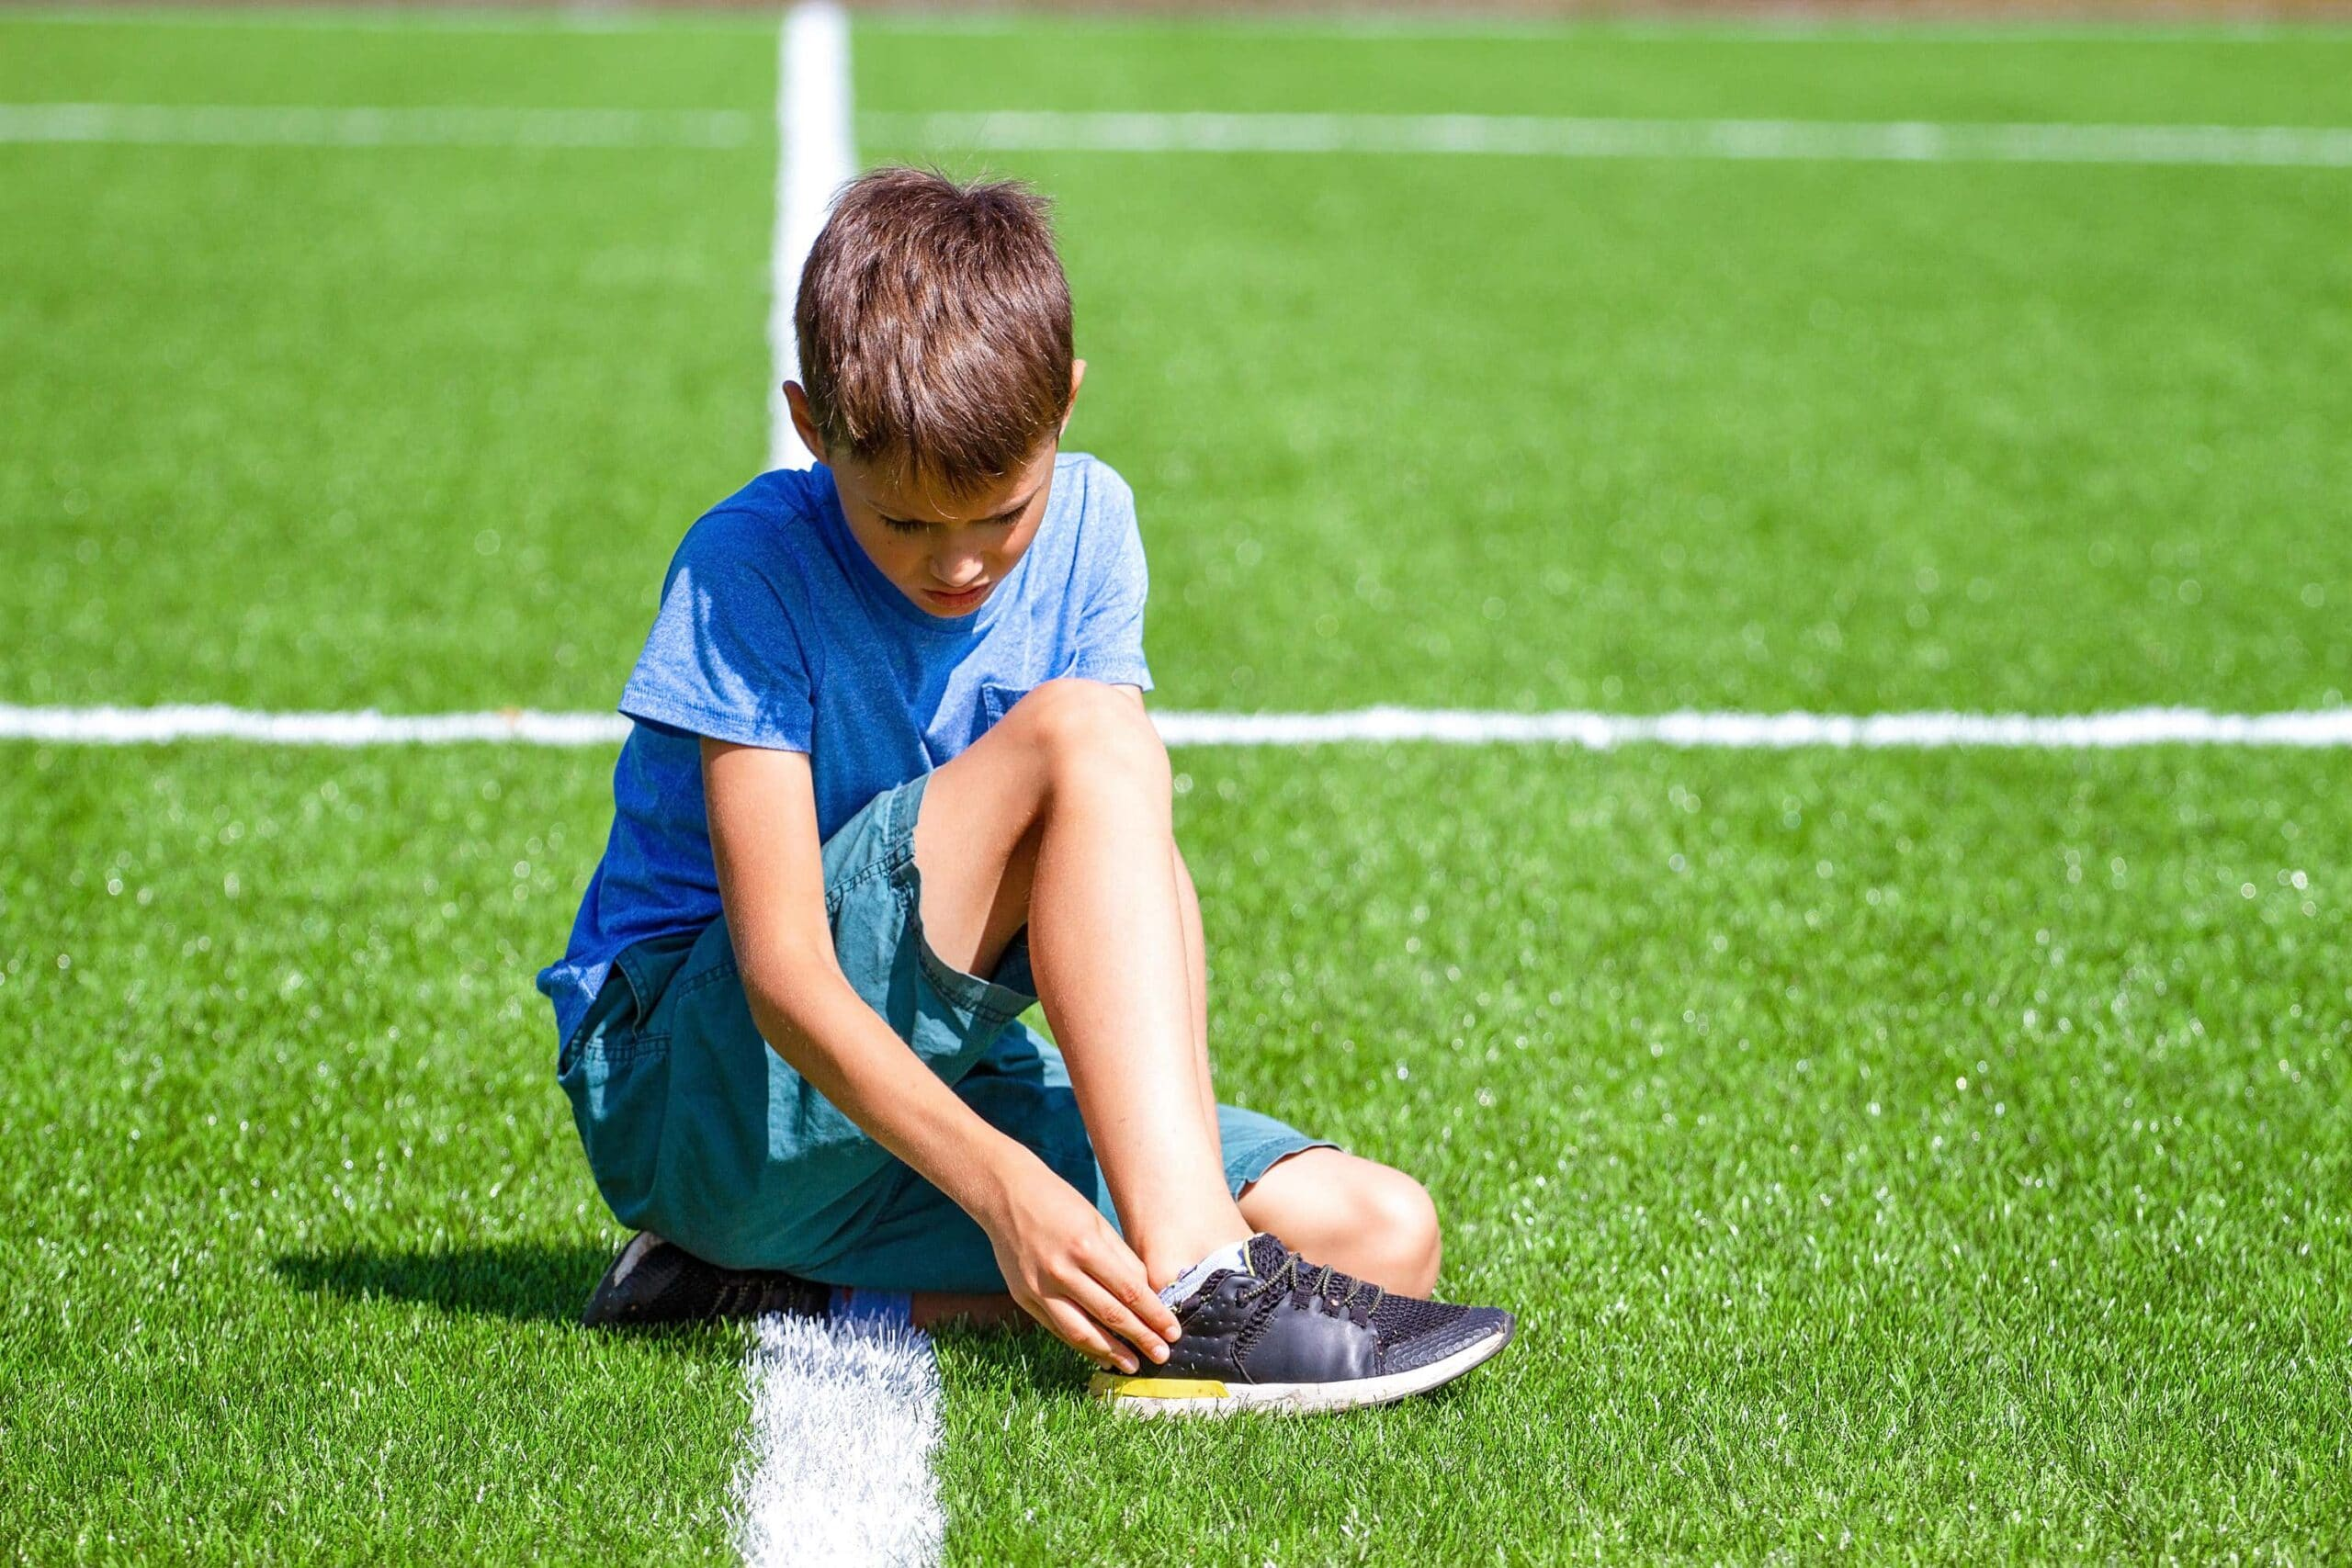 Children Getting More Injuries As They Return To Sport After Lockdown